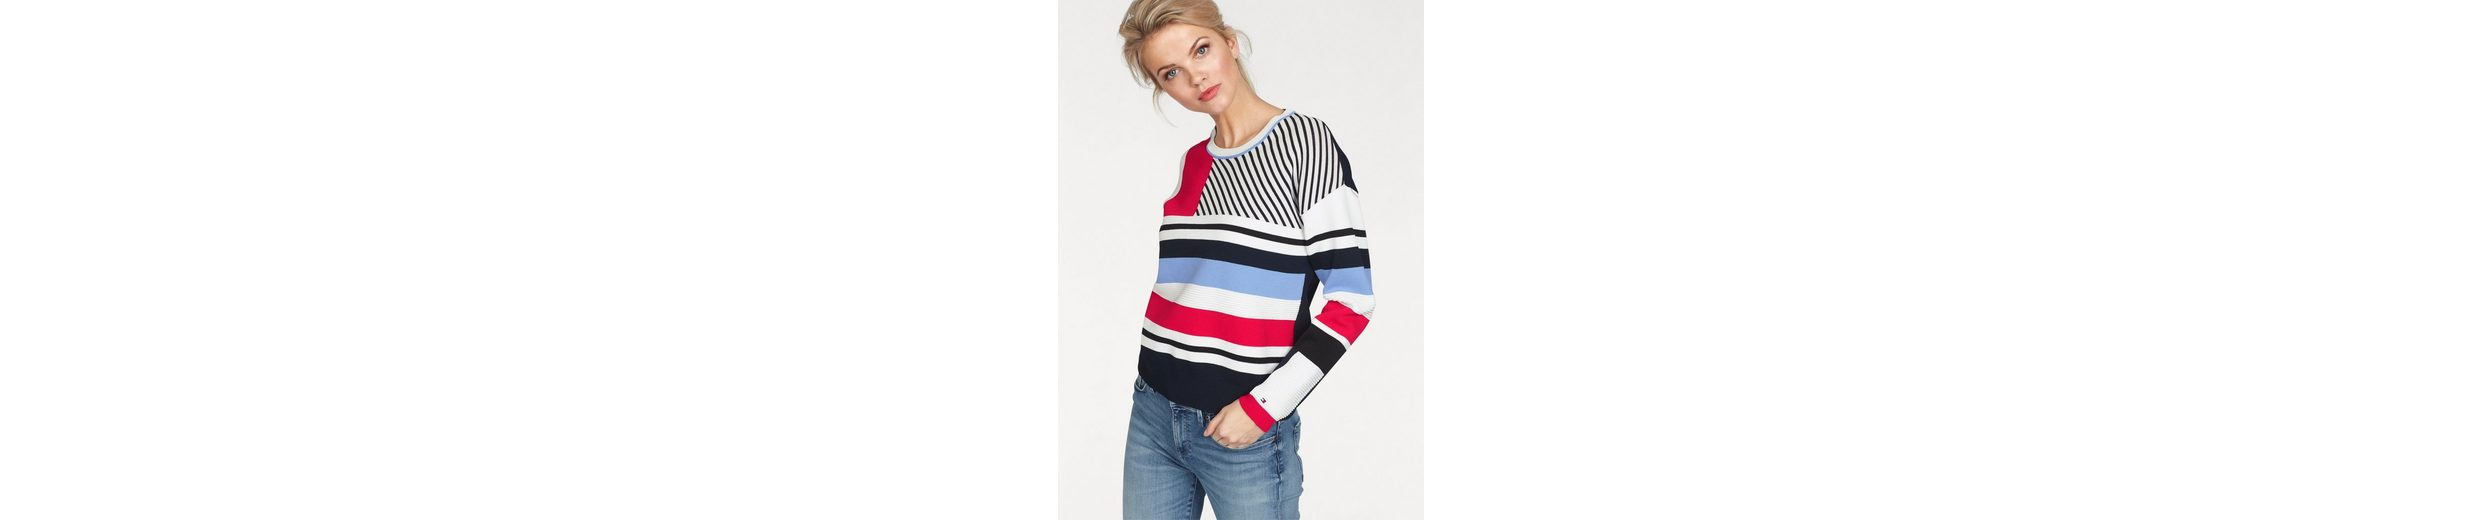 Tommy Hilfiger Strickpullover PILAUX GRAPHIC, im trendy Colourblocking